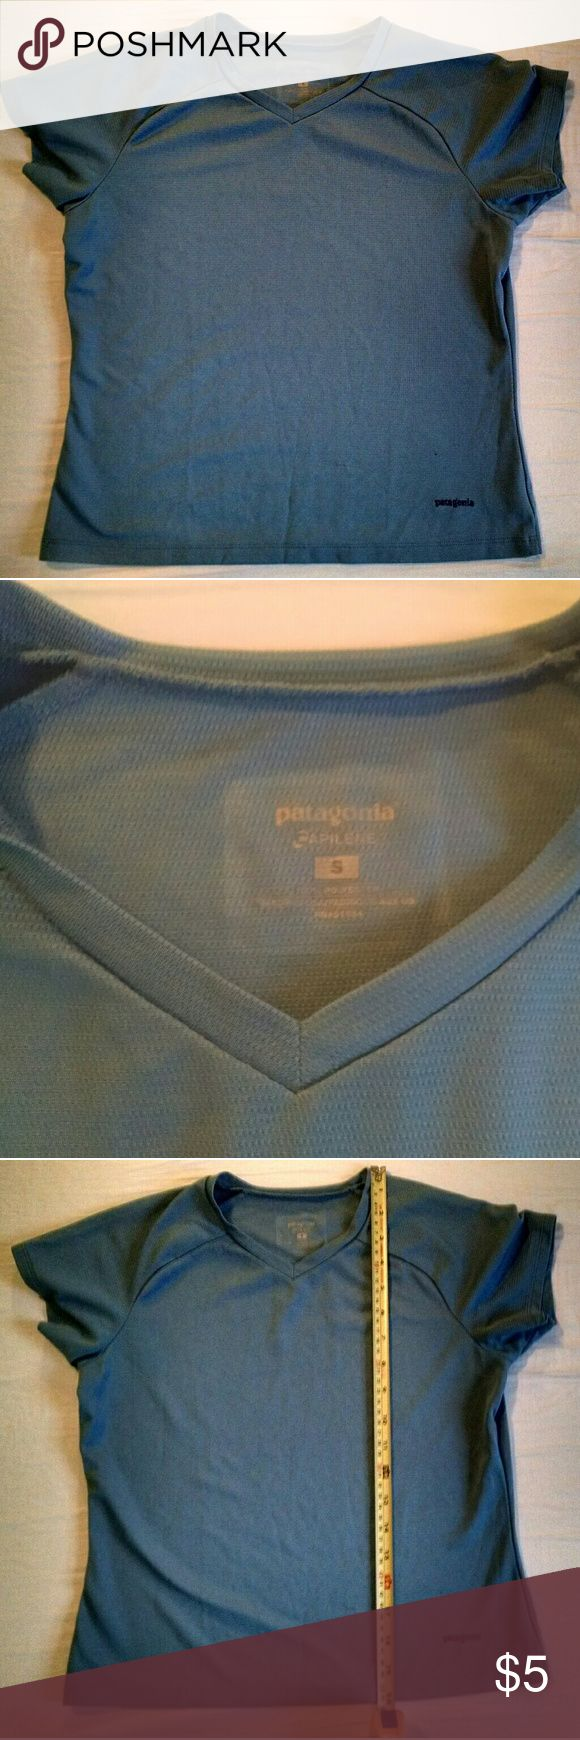 Patagonia wicking workout tee Blue workout tee by Patagonia. 100 percent polyester. Great for biking or running in the warm weather. Two snags in front near the bottom. Worse of the two shown in the last photo. Patagonia Tops Tees - Short Sleeve